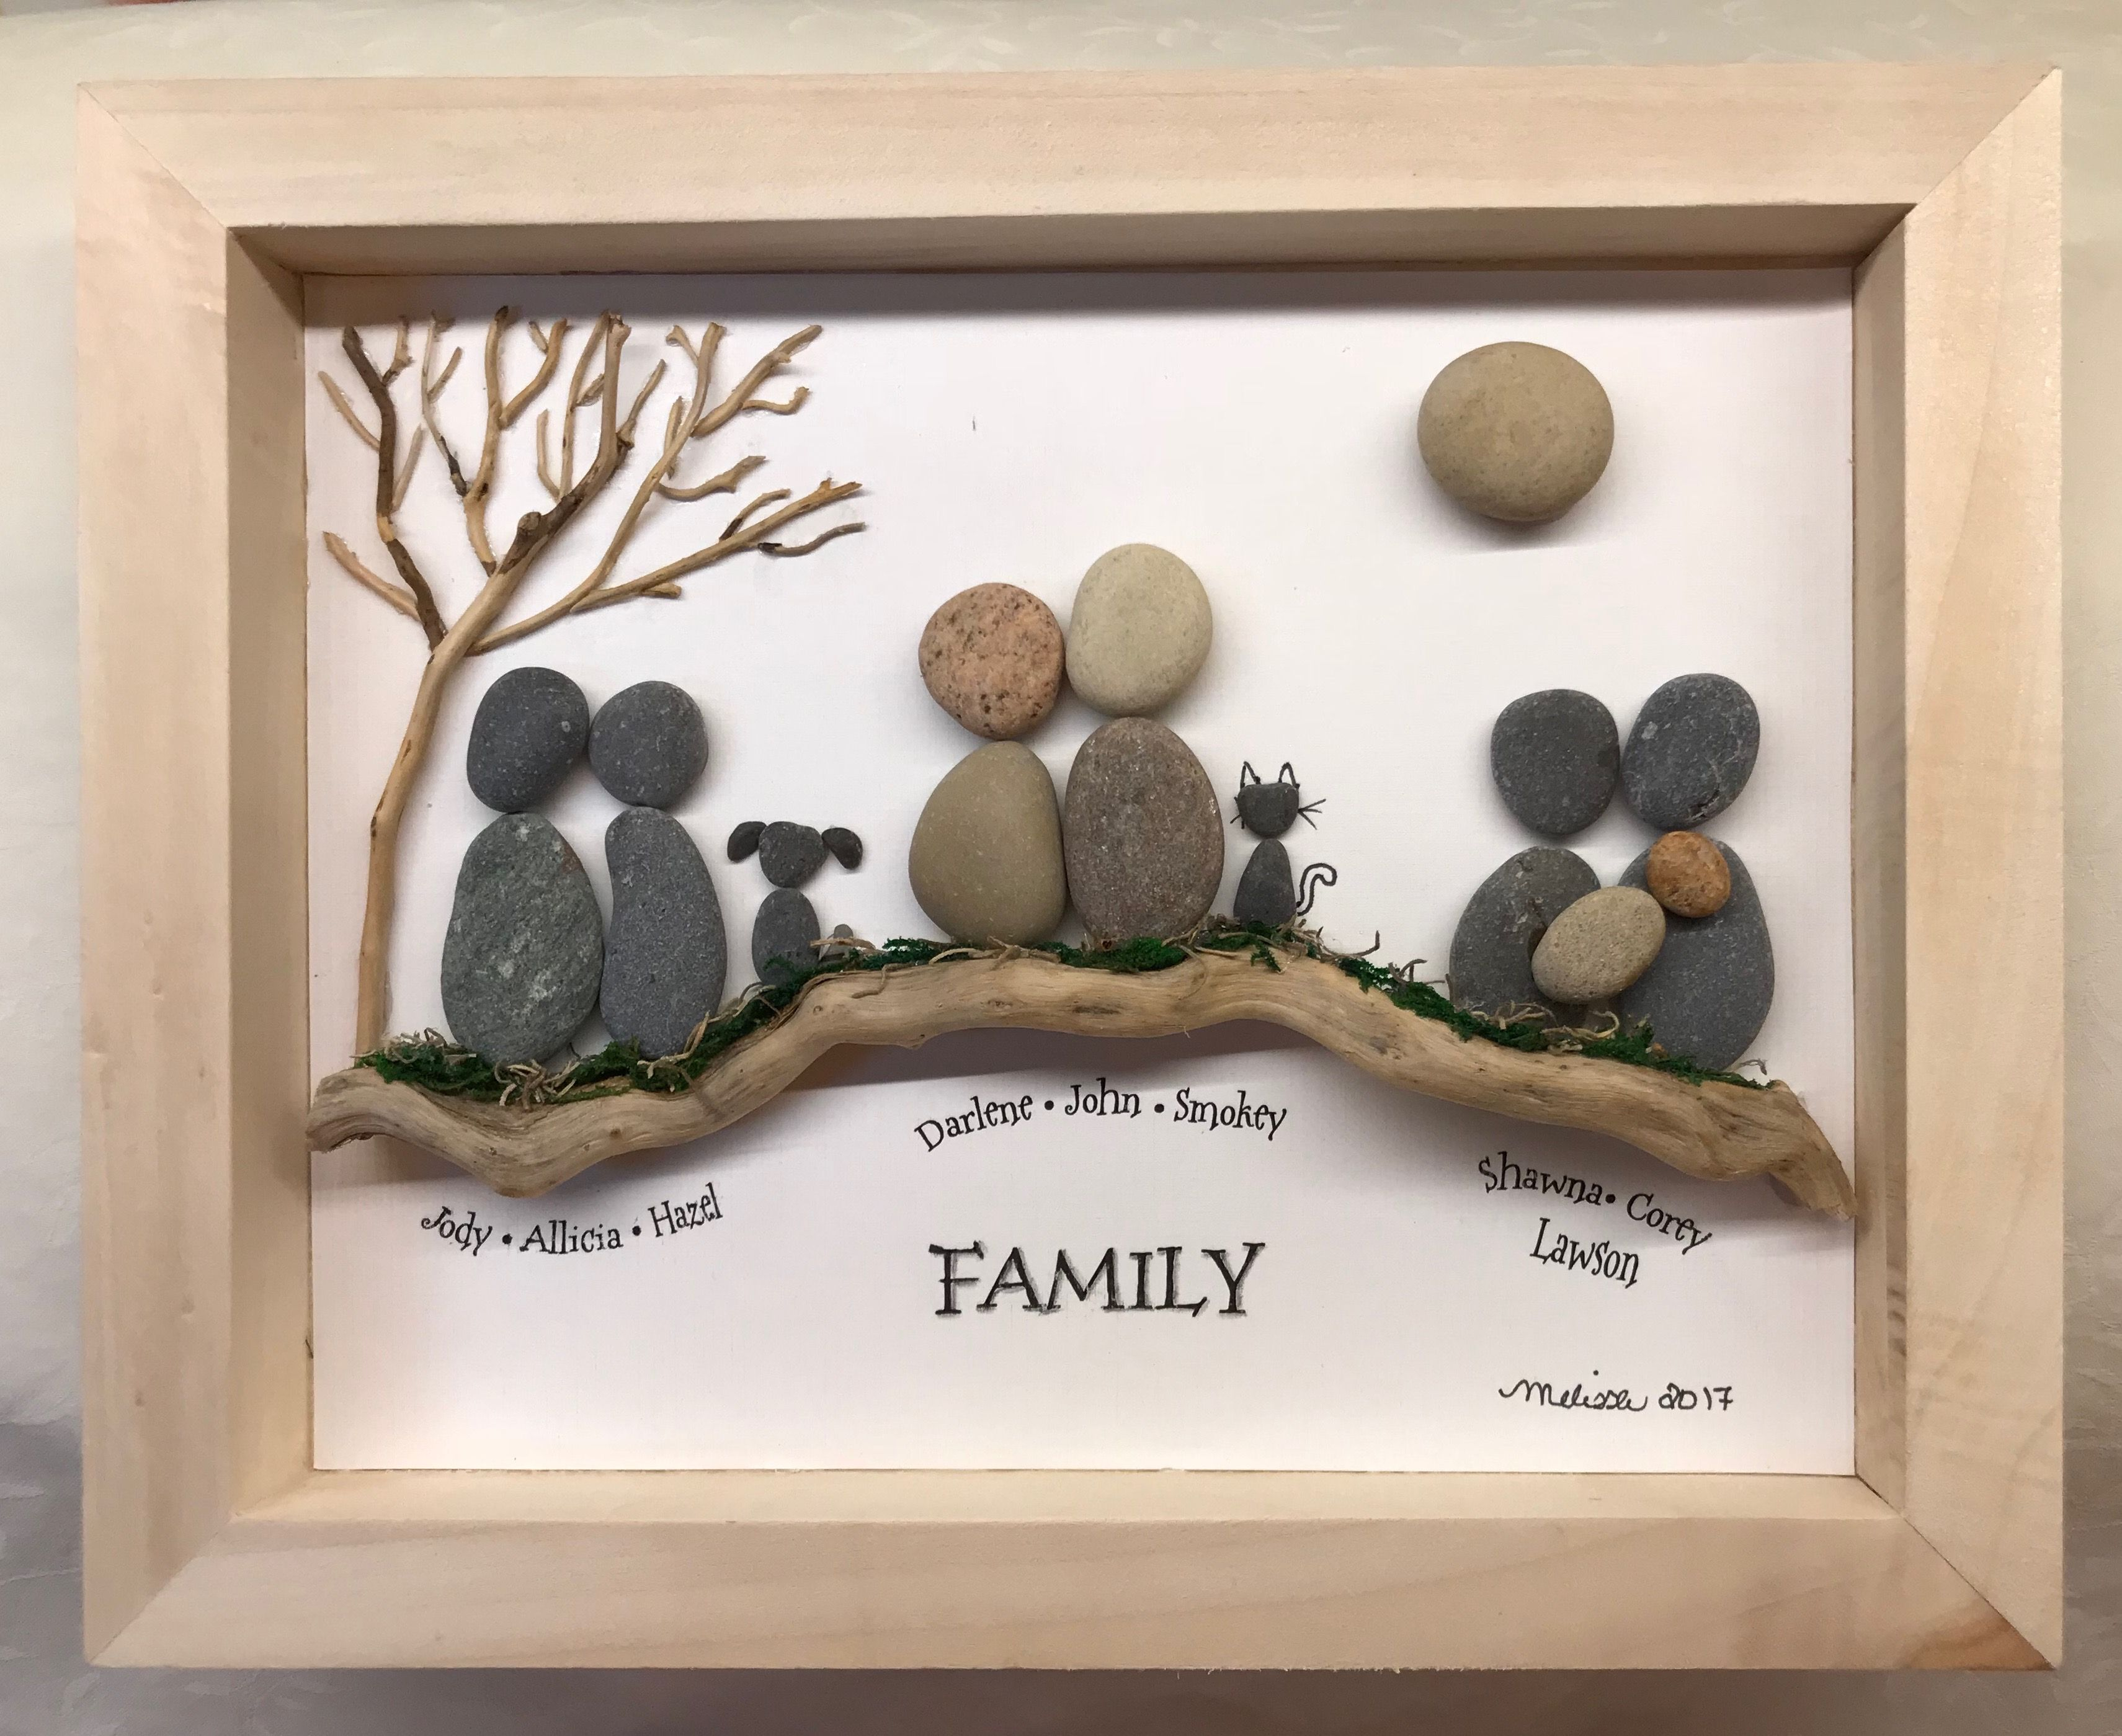 Pebble Art Family Driftwood Moss And A Tree Stone